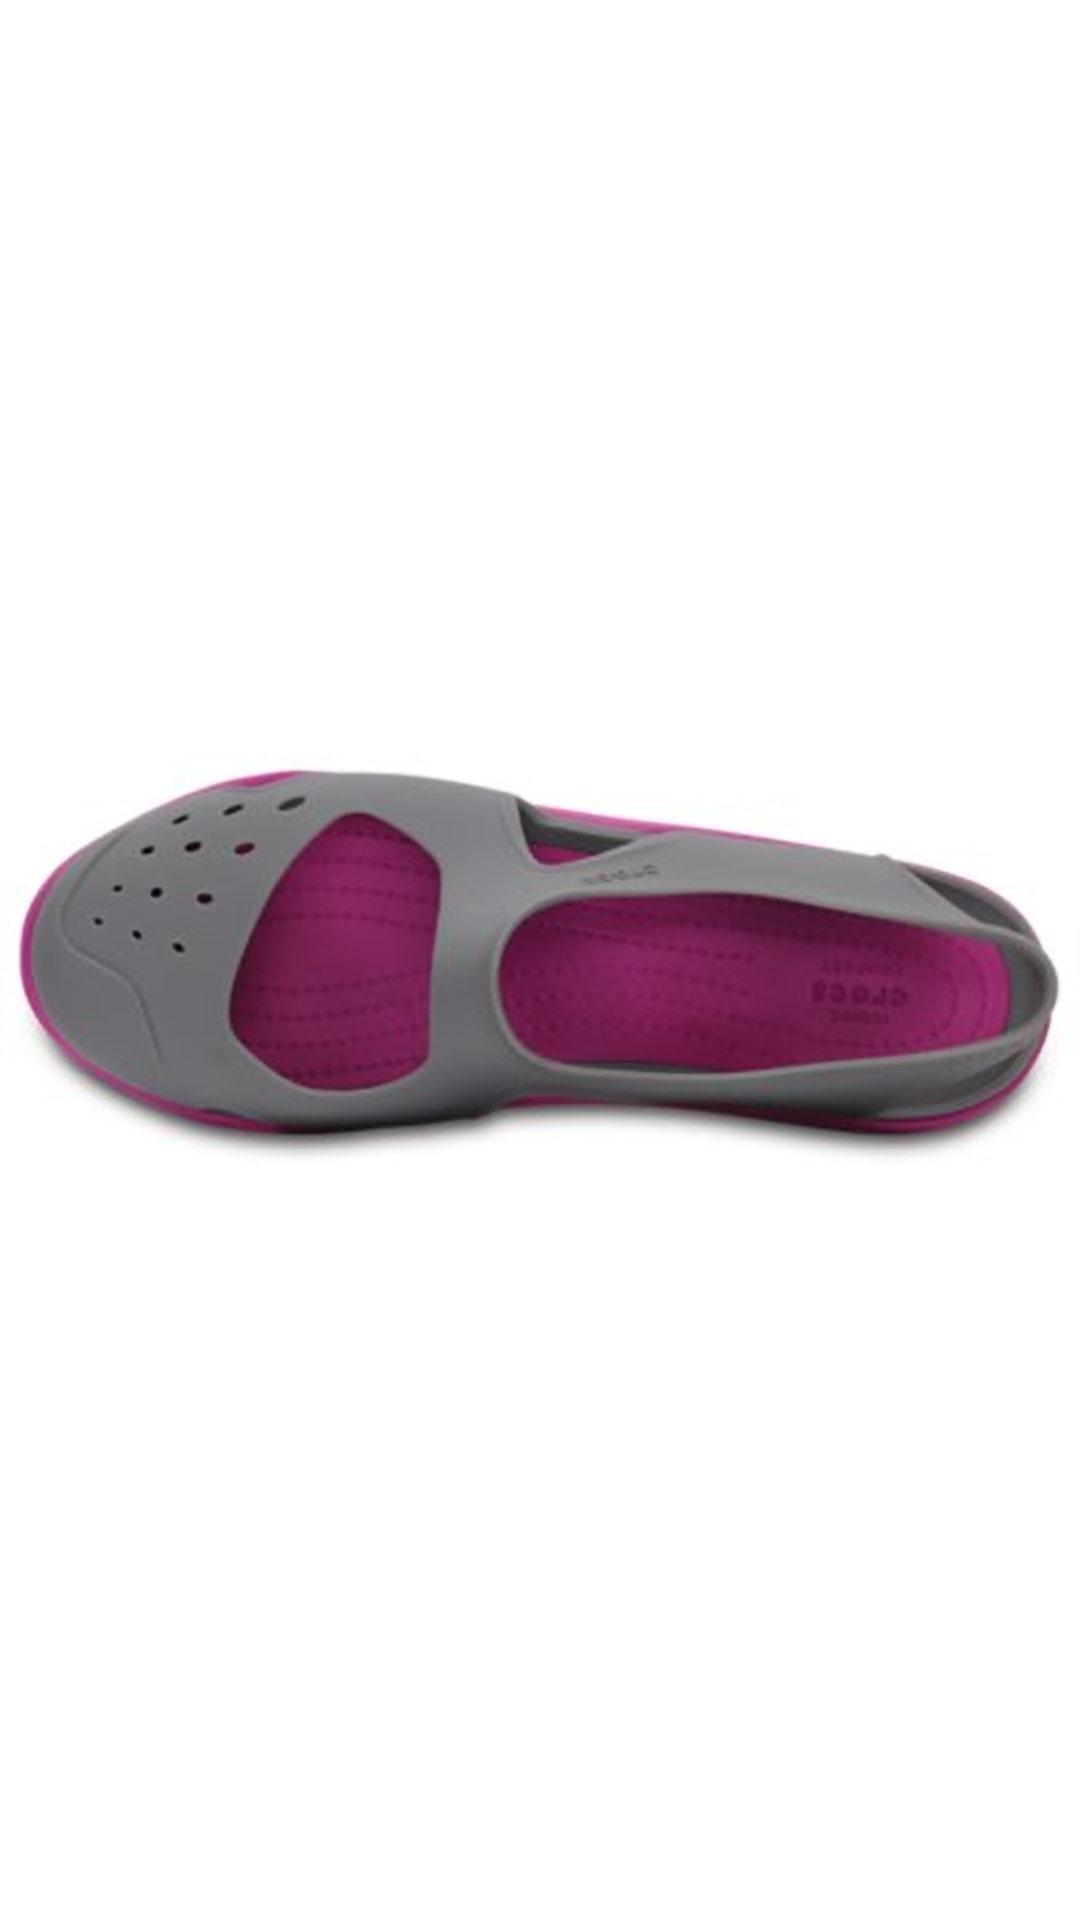 f5fef9cec532 Buy Crocs Women Pink Casual Shoes Online at Low Prices in India -  Paytmmall.com